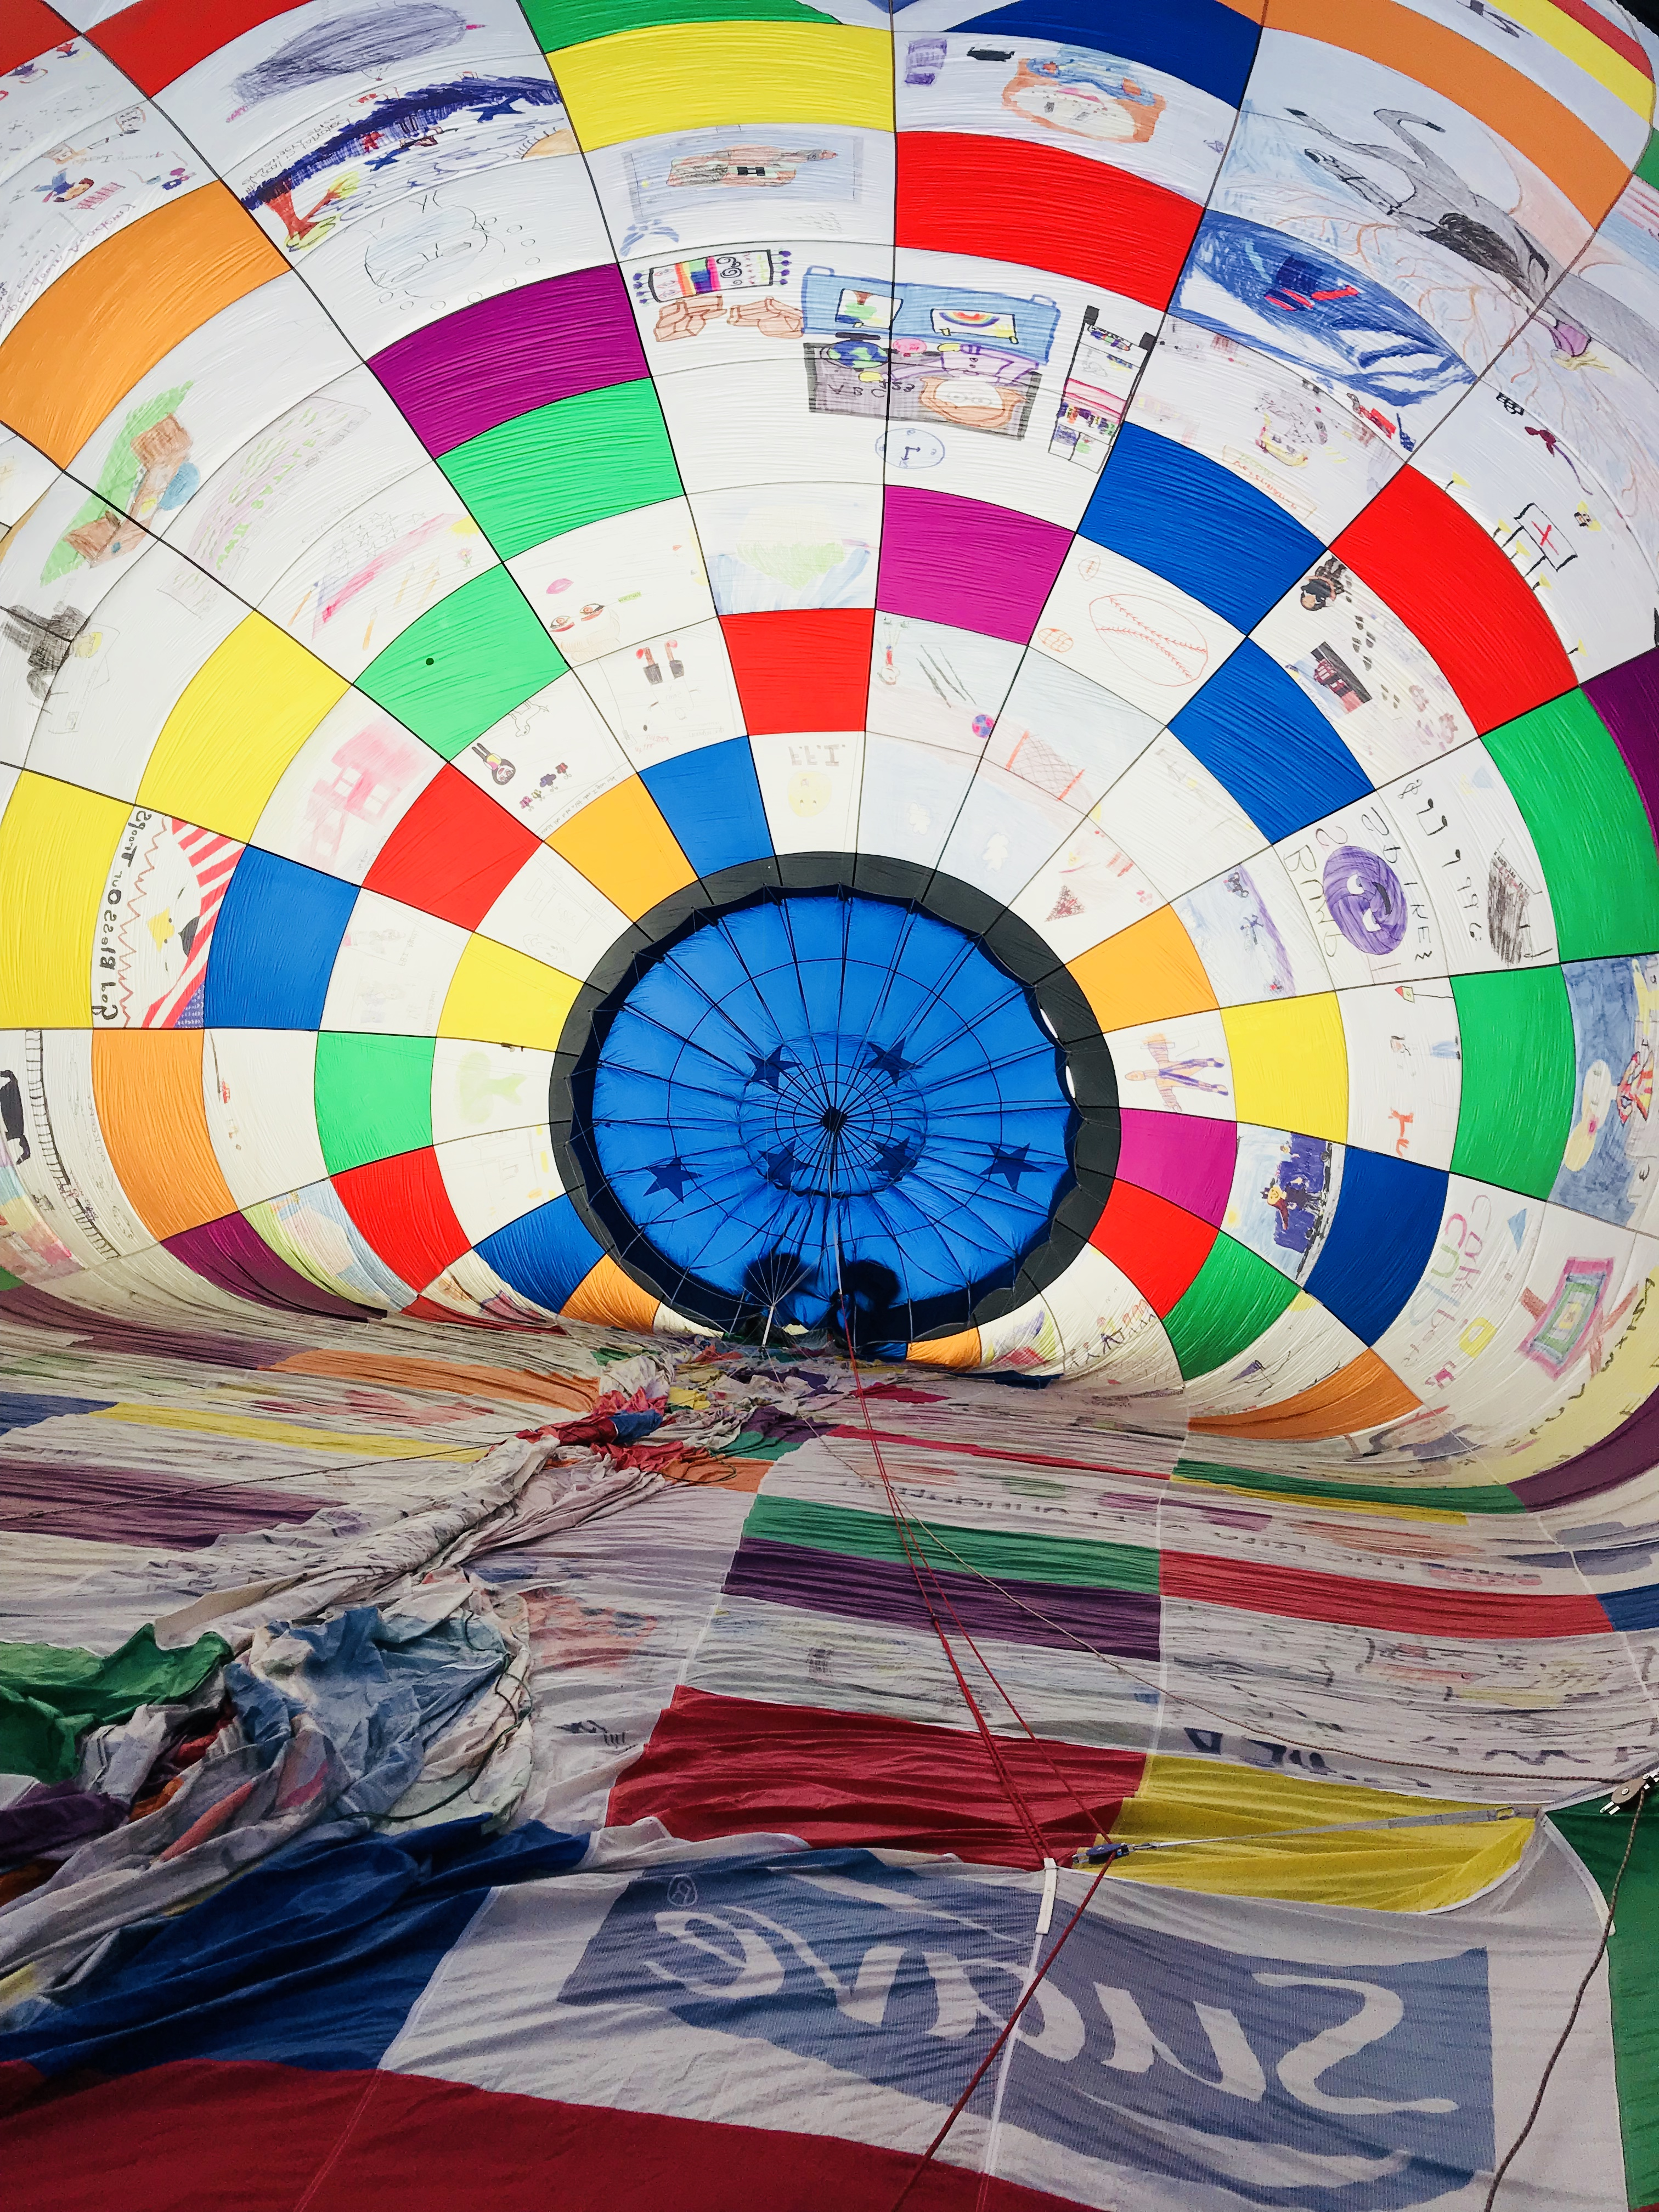 Honor Crewing the RiteAid KidScents DreamShip at the Hall of Fame Balloon Classic